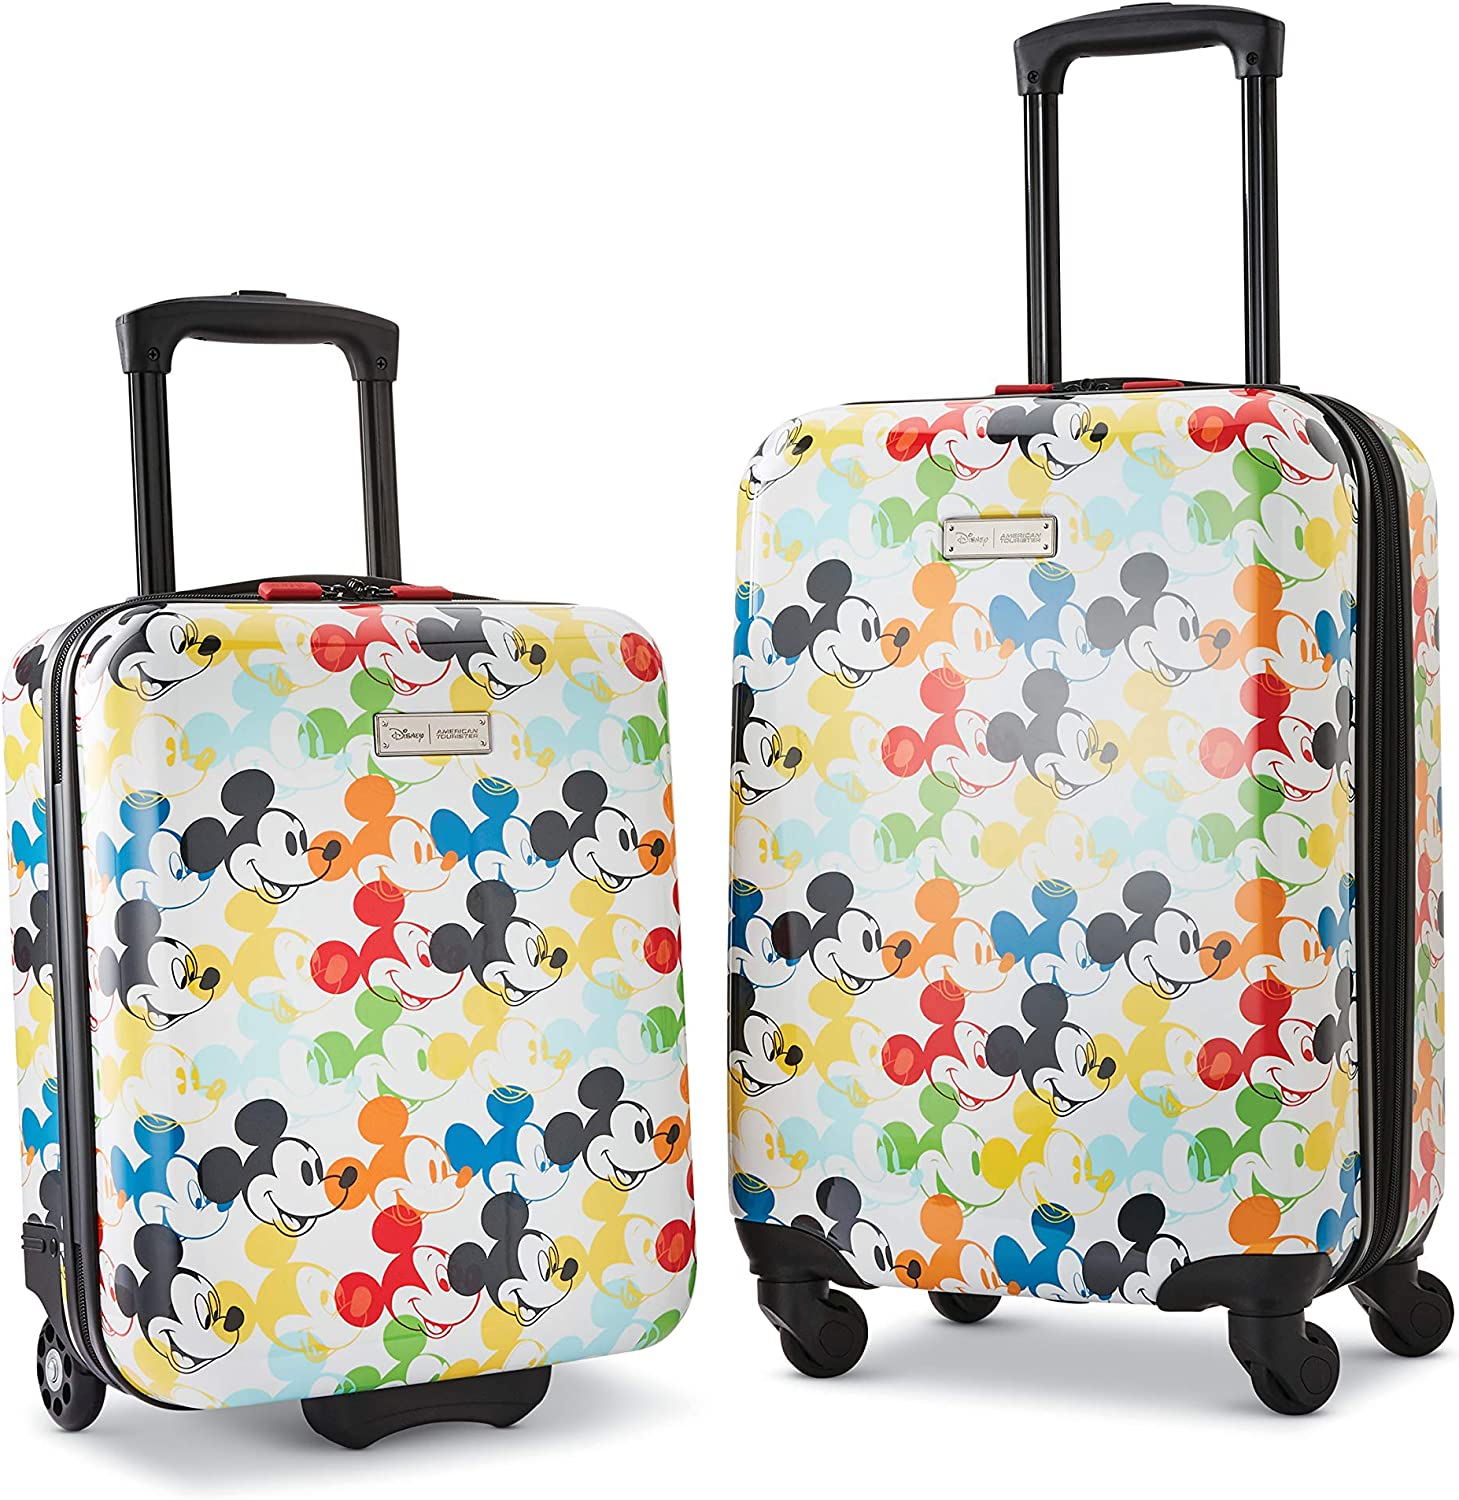 Amazon Com American Tourister Disney Hardside Luggage With Spinner Wheels Mickey Mouse 2 2 Piece Set 18 21 Kids Luggage